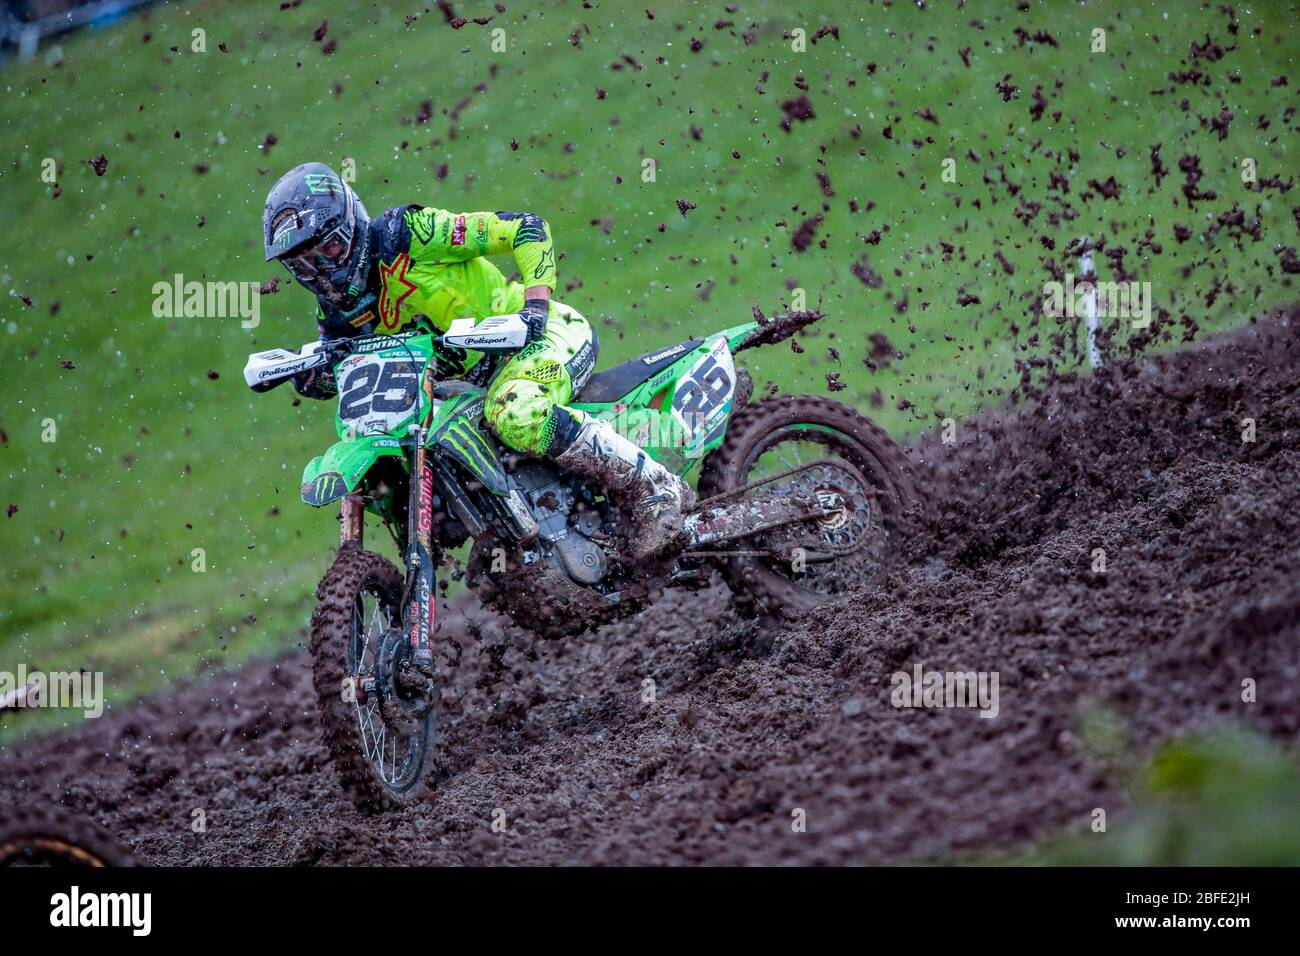 Winchester, Italy. 01st Mar, 2020. clement desalle (bel) team kawasaki factory racing during MXGP of Great Britain, Motocross in winchester, Italy, March 01 2020 Credit: Independent Photo Agency/Alamy Live News Stock Photo